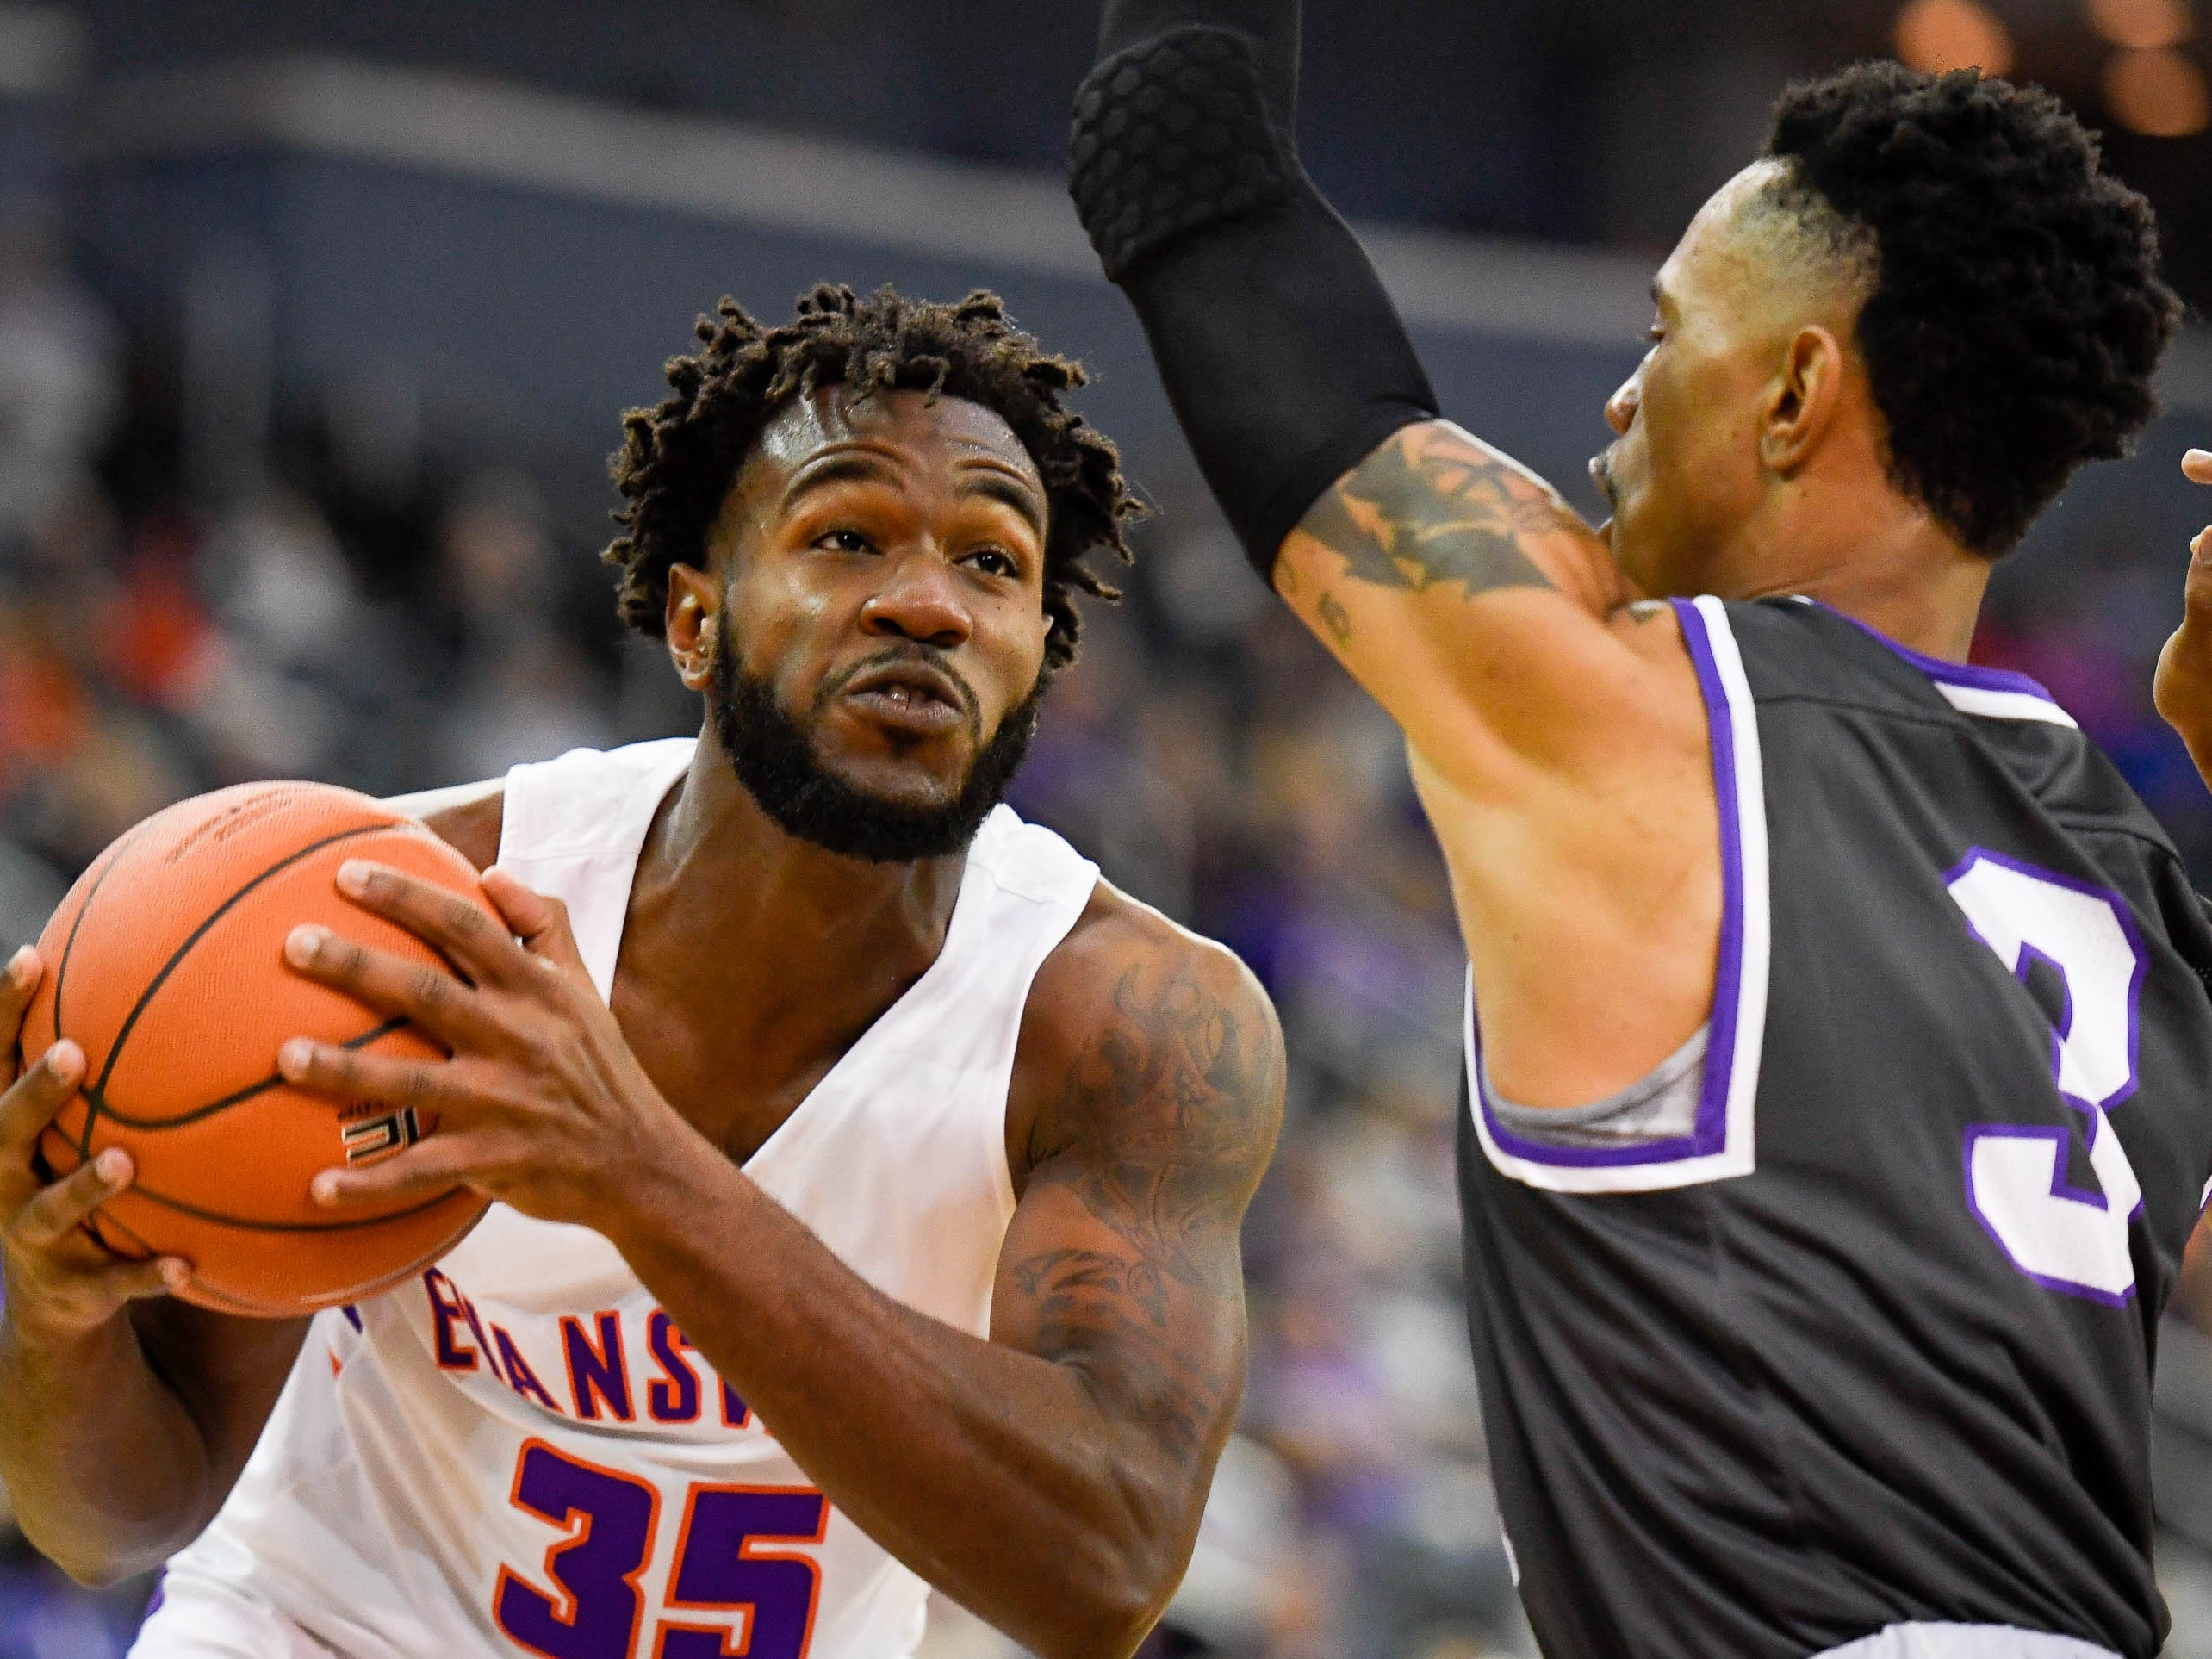 University of Evansville's John Hall (35) looks to shoot over New Mexico Highlands' Gerad Davis (3) as the University of Evansville Purple Aces play the New Mexico Highlands Cowboys in a exhibition game at the Ford Center Saturday, November 3, 2018.